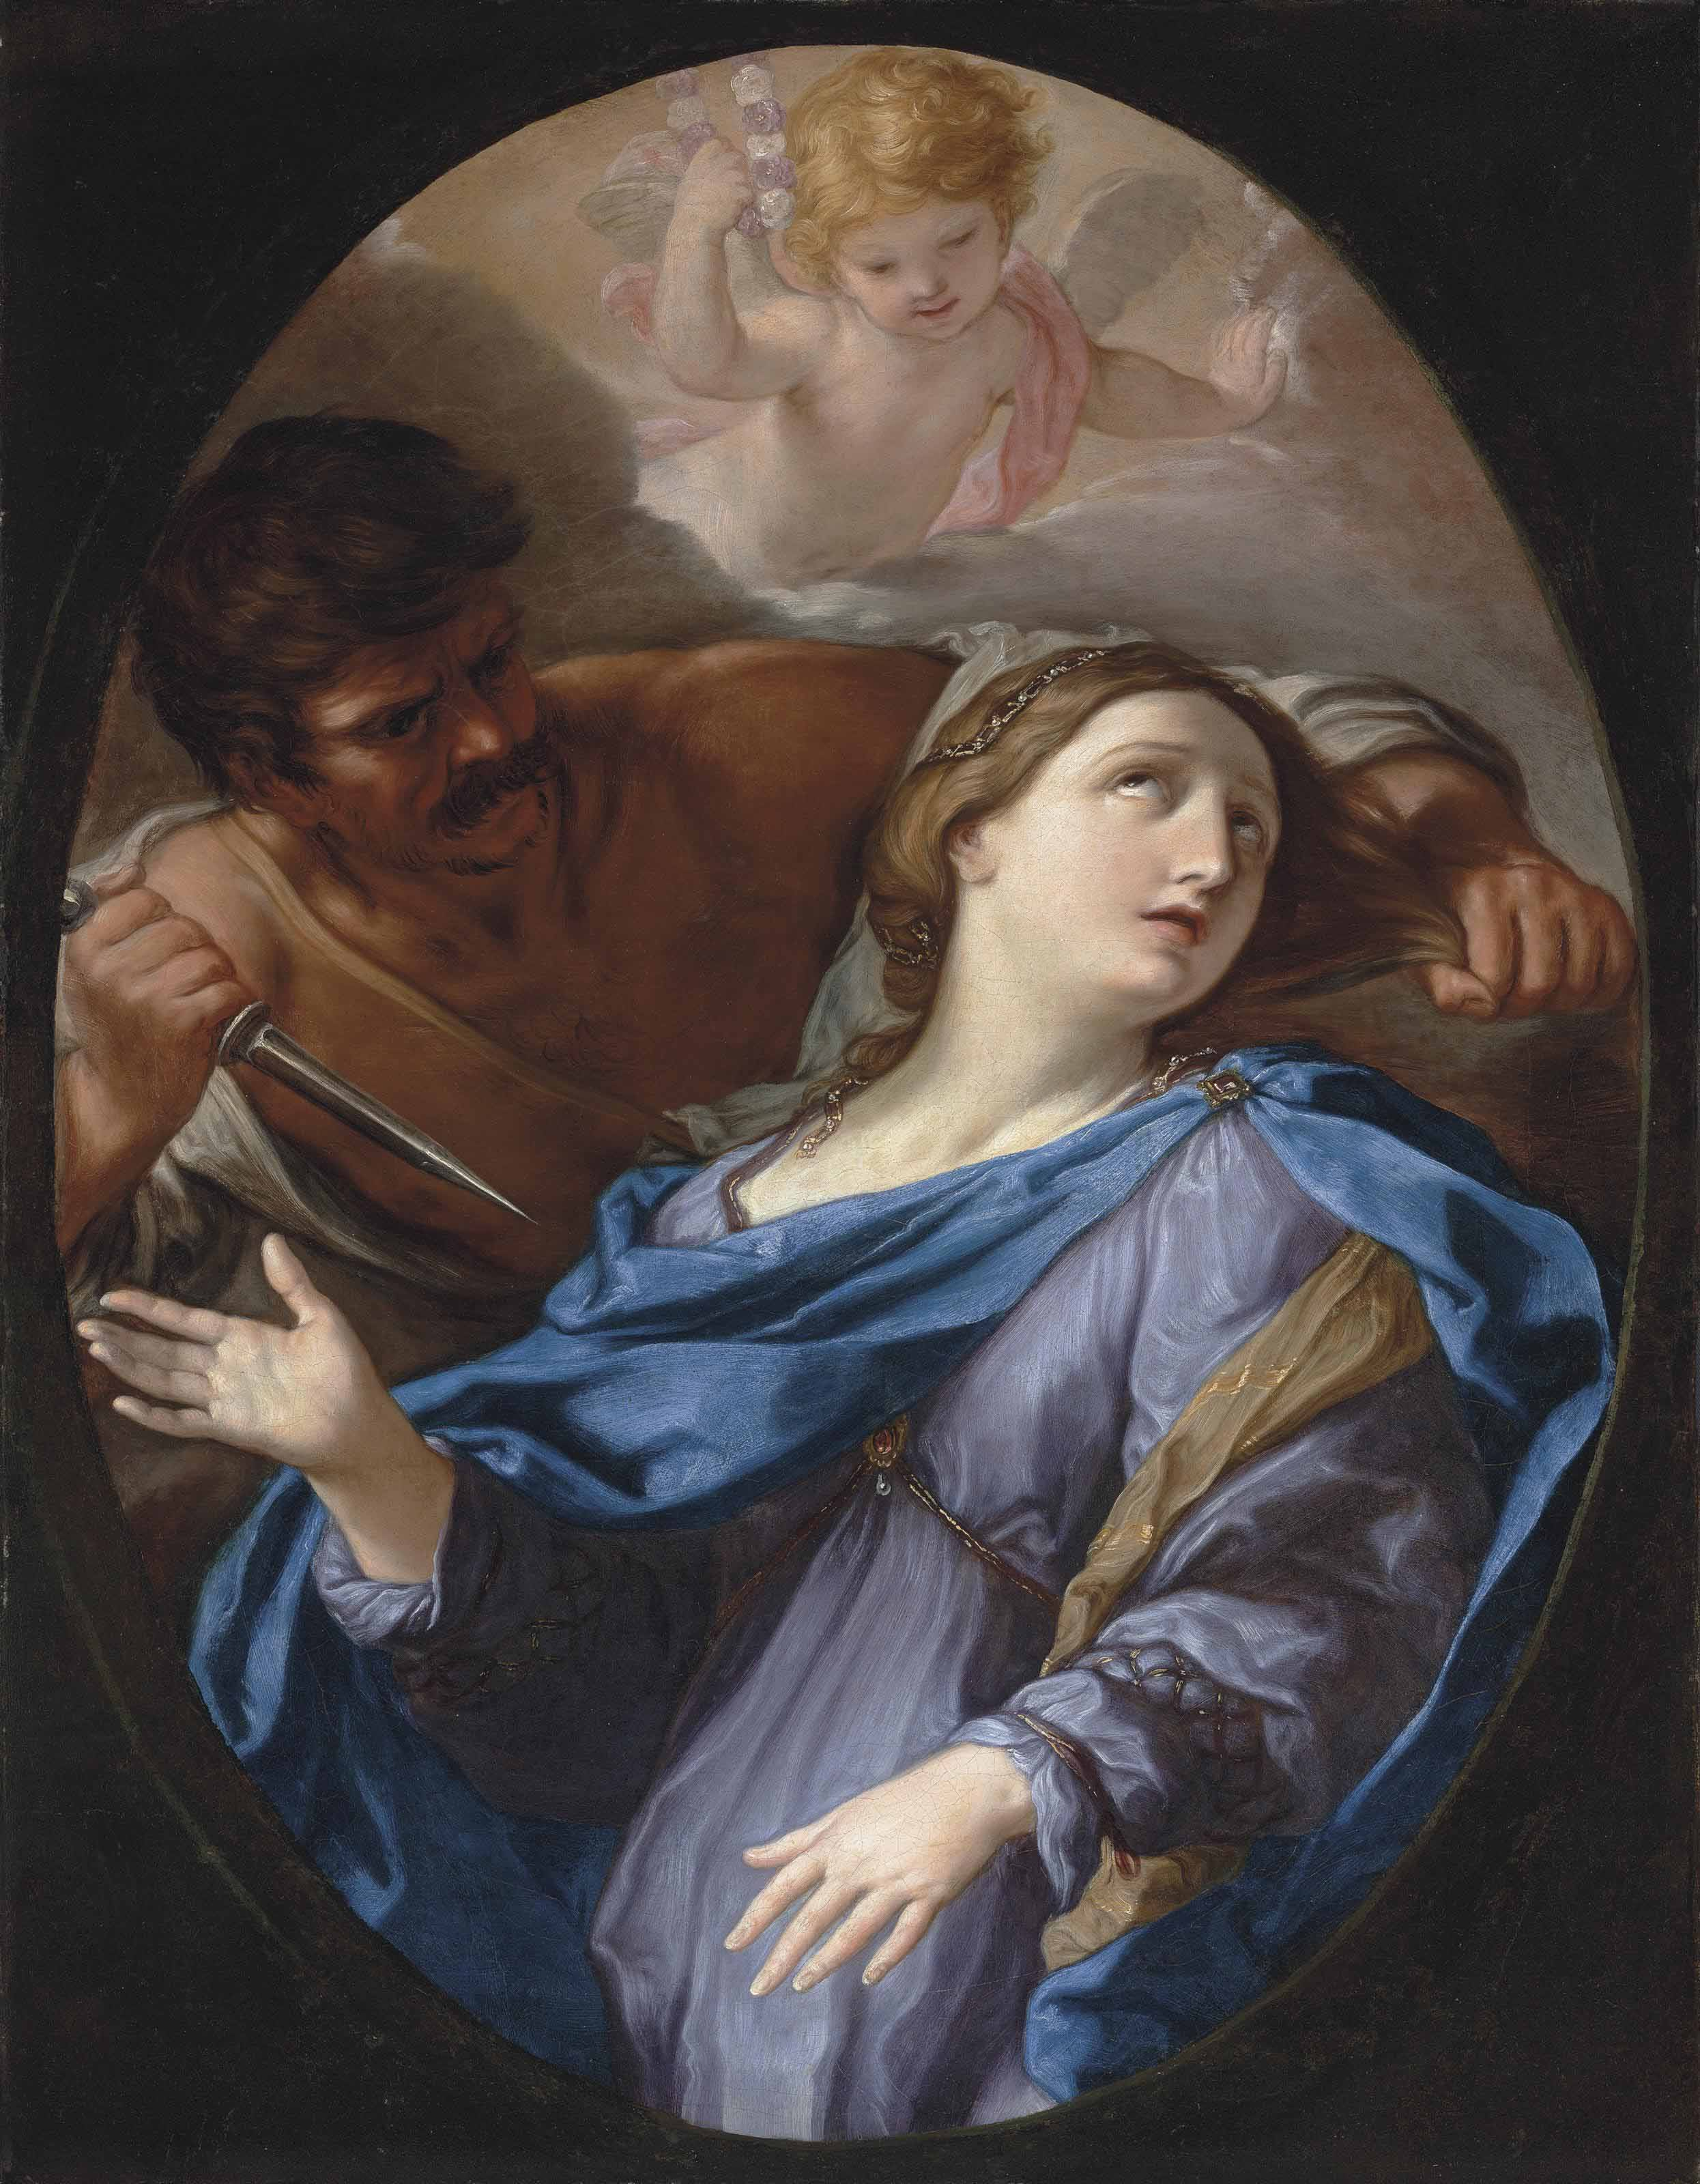 Attributed to Elisabetta Sirani (Bologna 1638-1665)